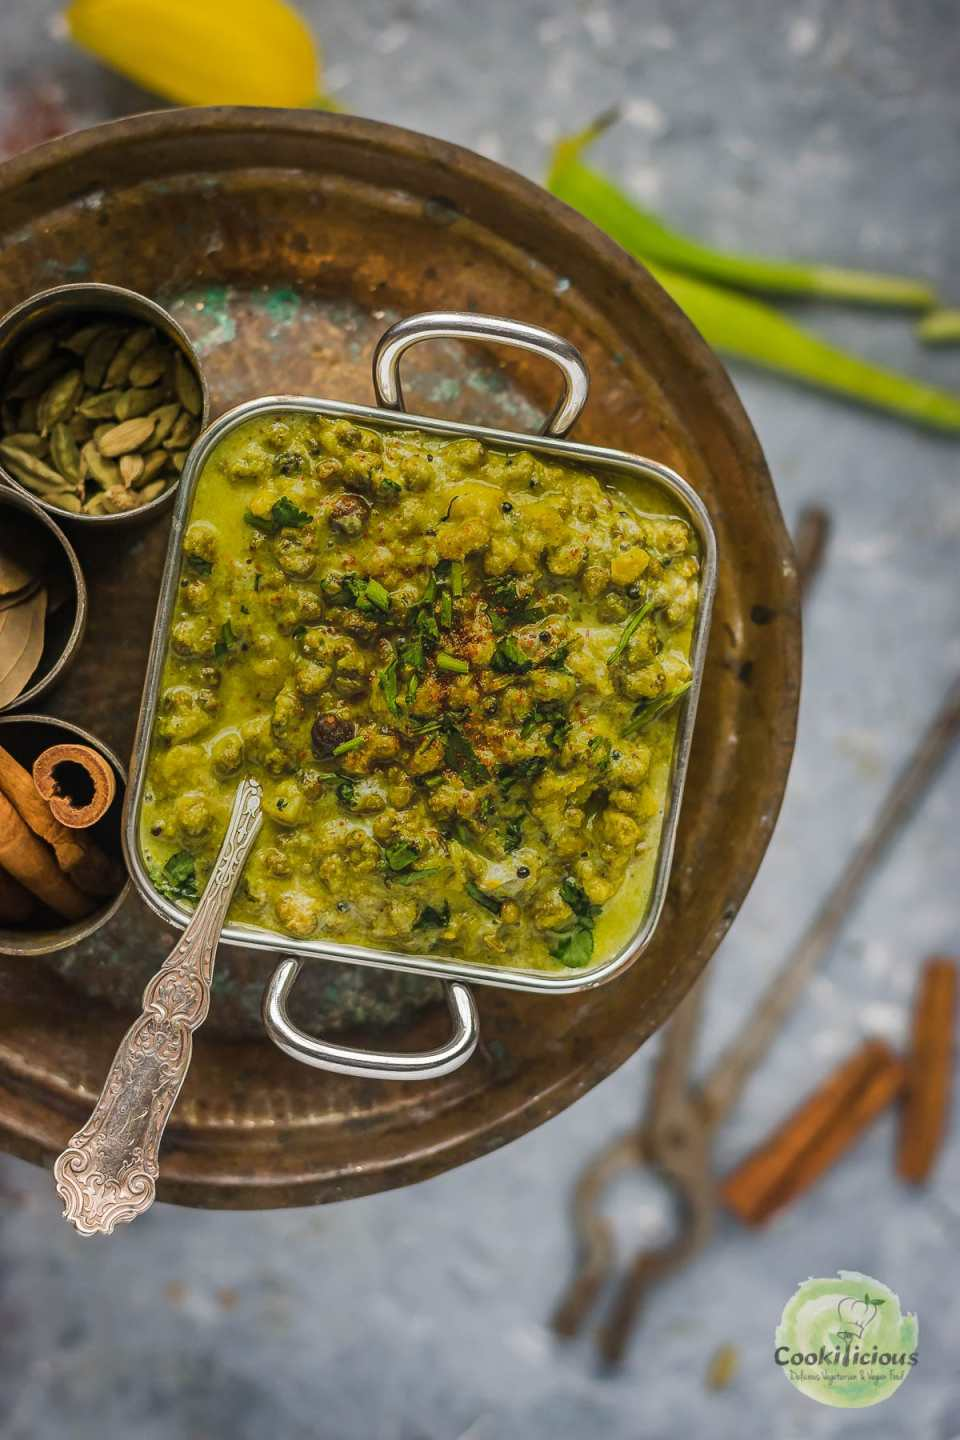 Moong Sprouts Coconut Vegan Curry in a square bowl with a spoon in it